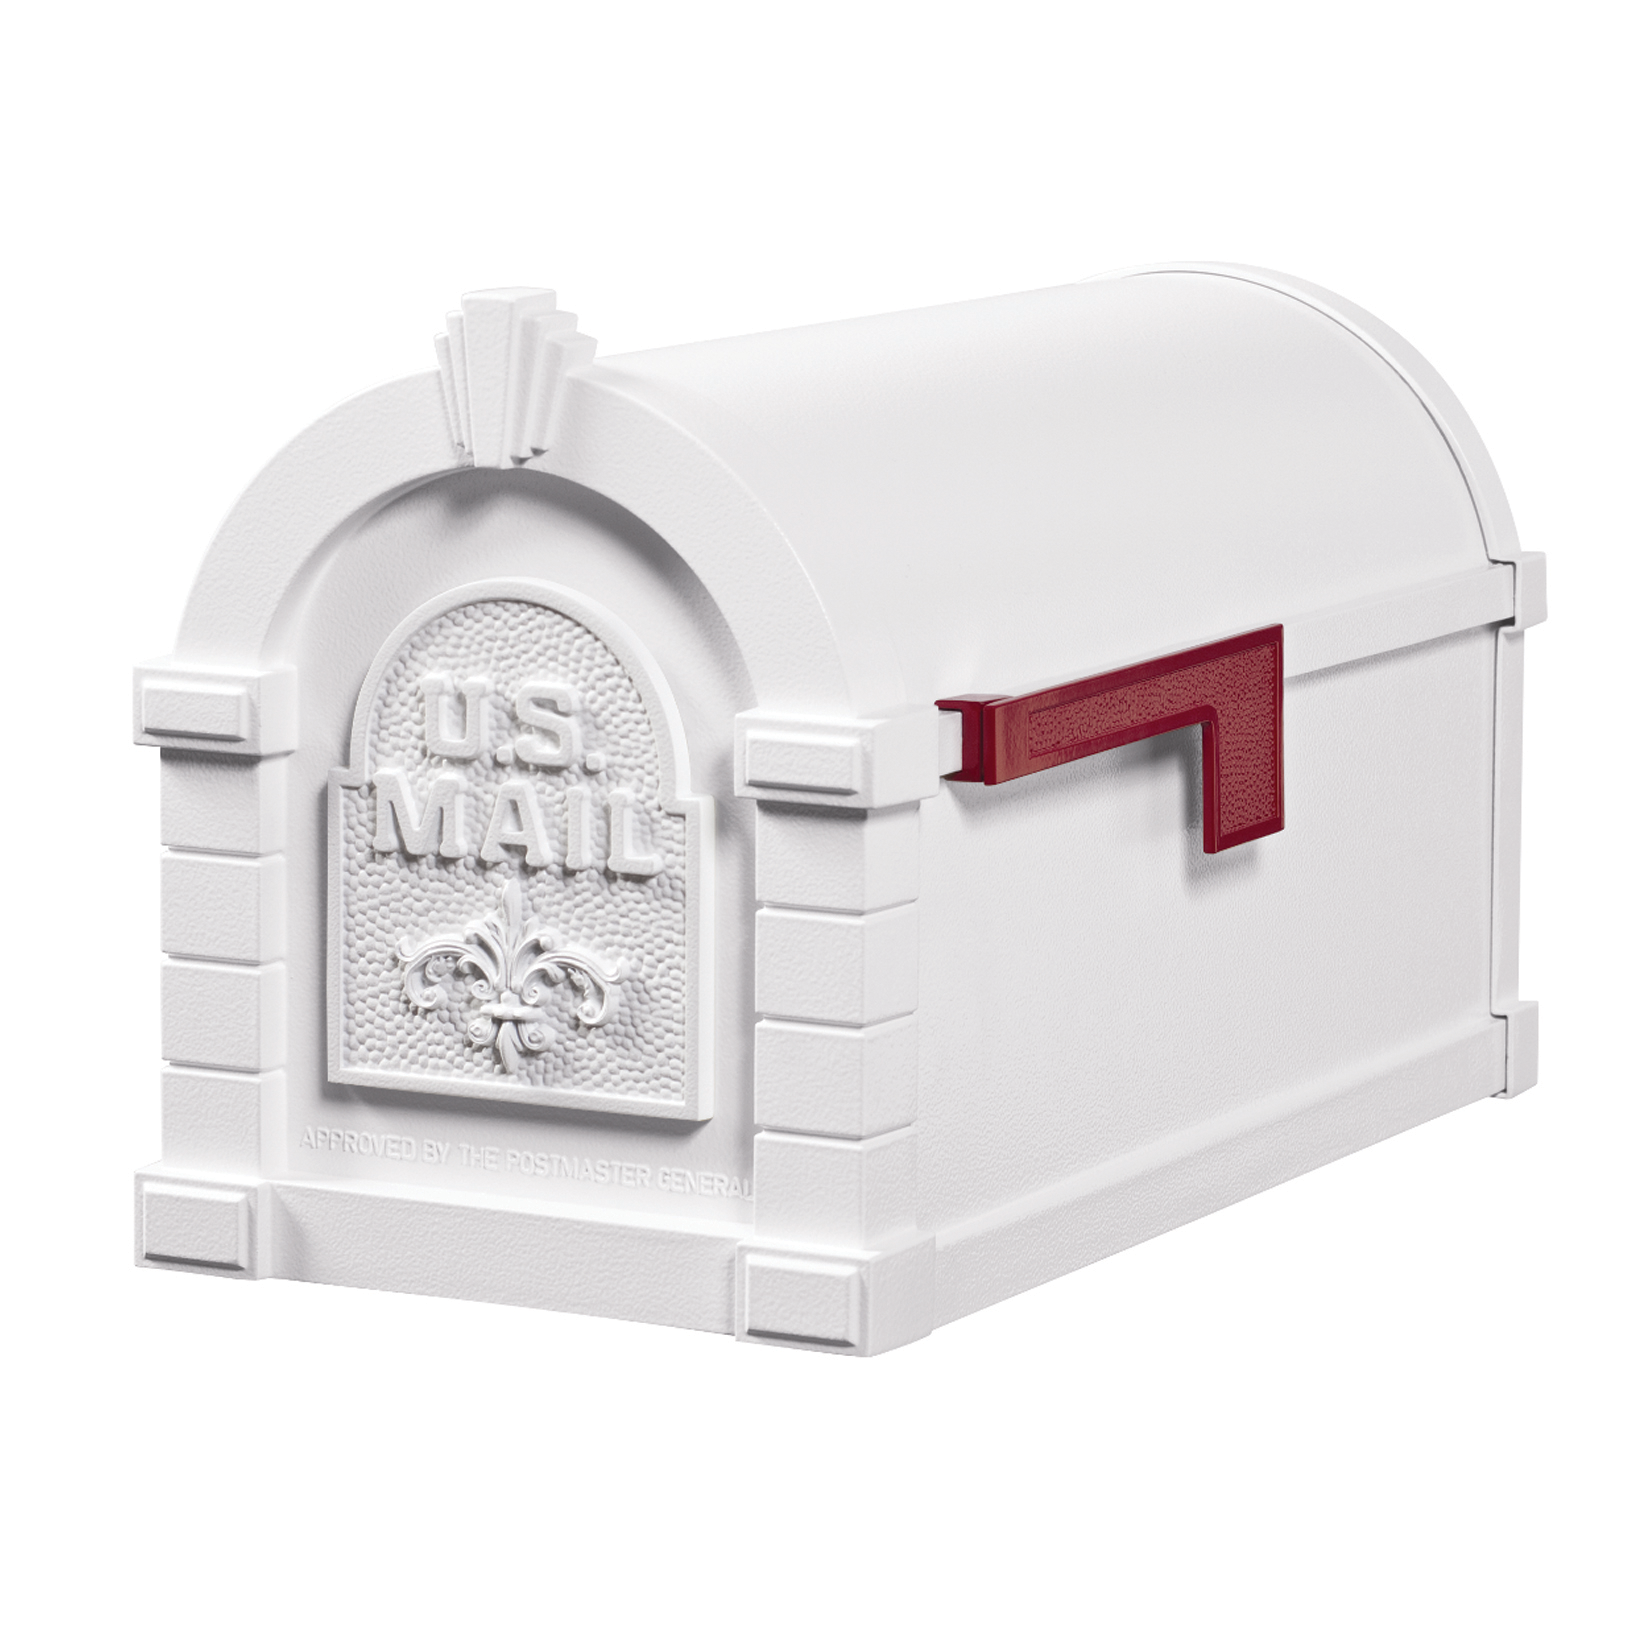 Gaines Fleur De Lis Keystone Mailboxes - All Black